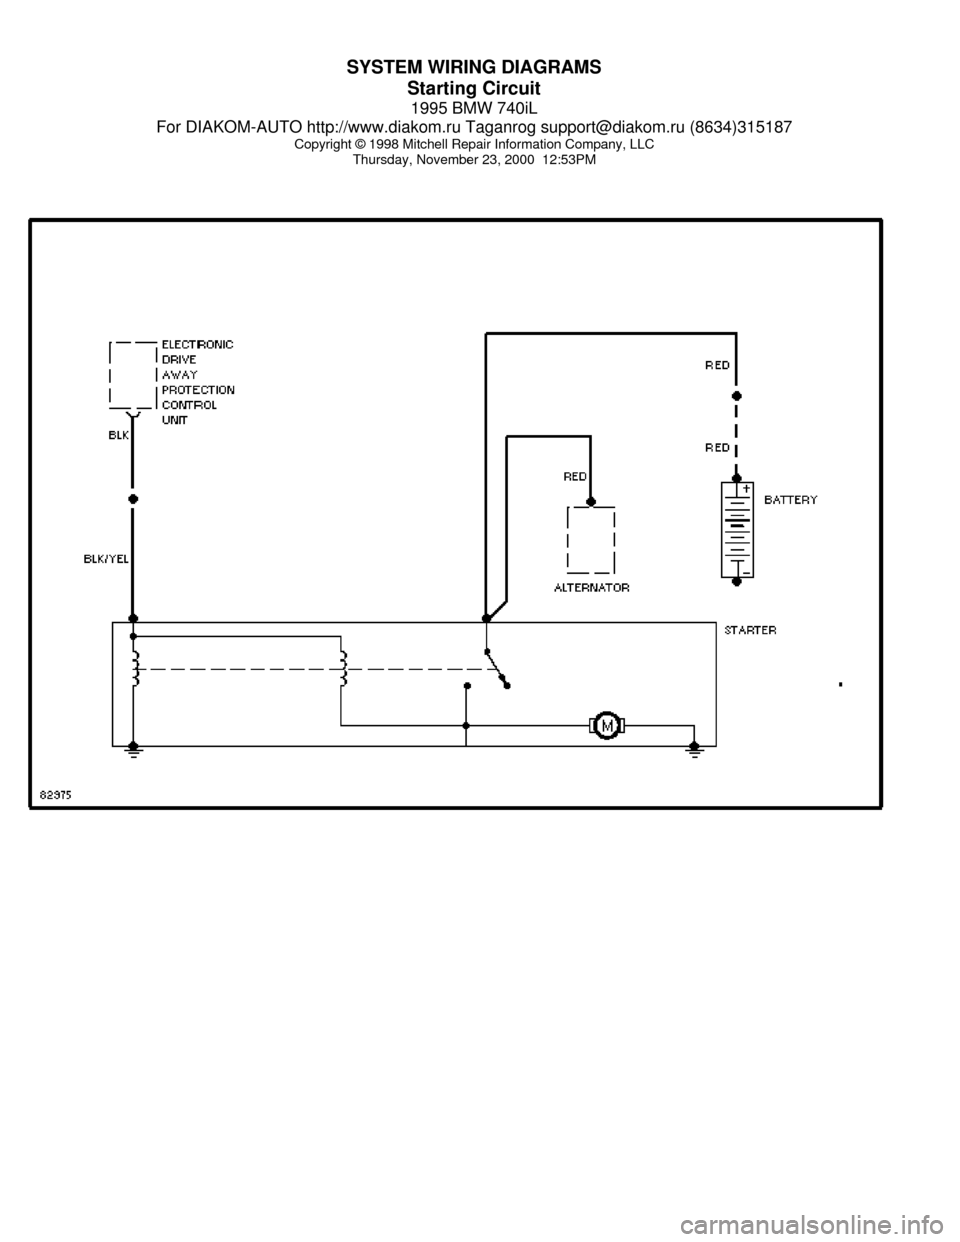 hight resolution of bmw 740il 1995 e38 system wiring diagramse38 wiring diagrams 20